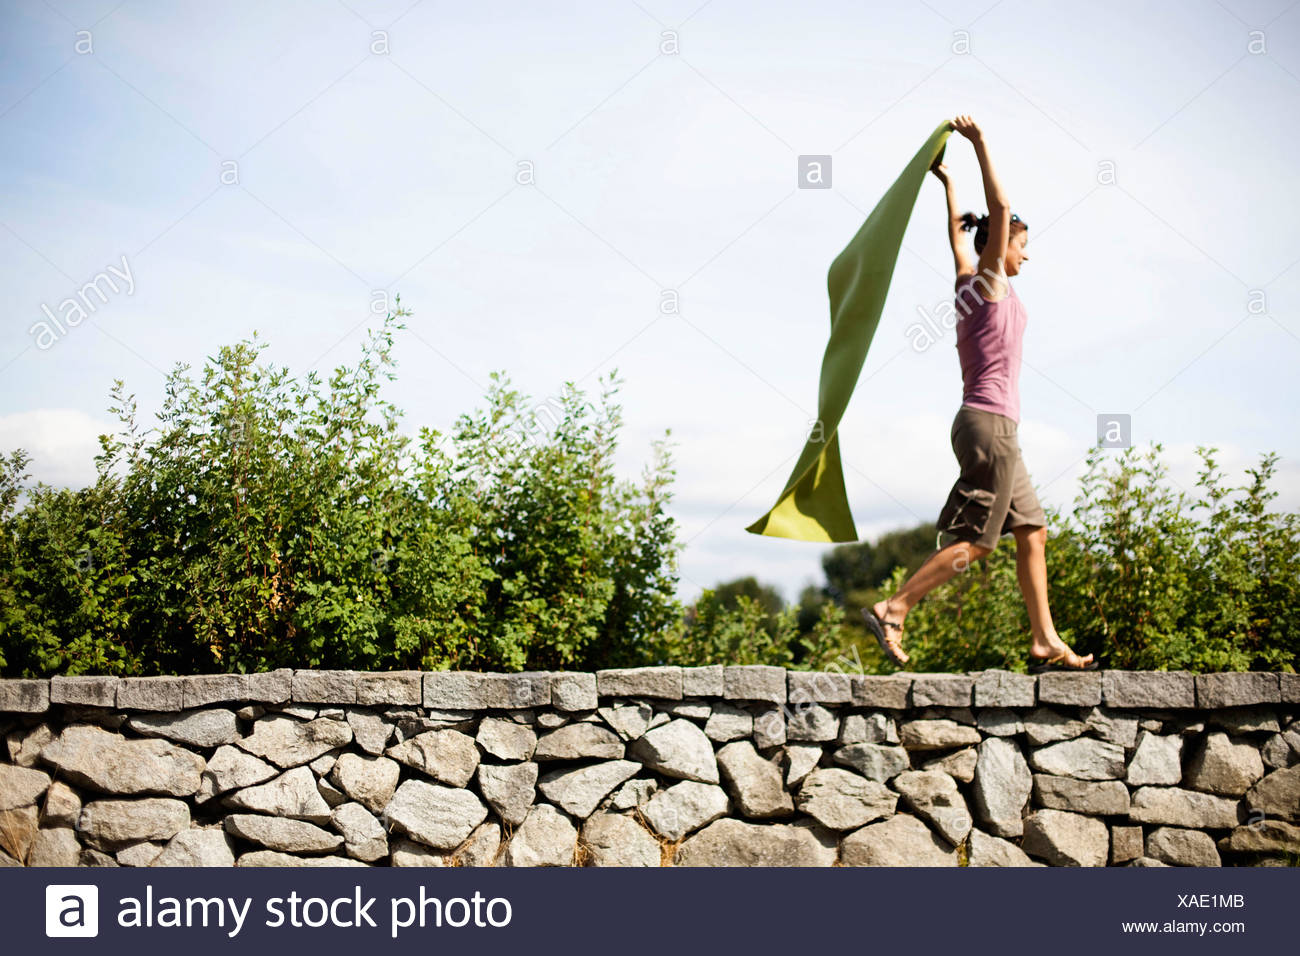 A woman pretends her green yoga mat is a cape while running on a stone ledge. - Stock Image